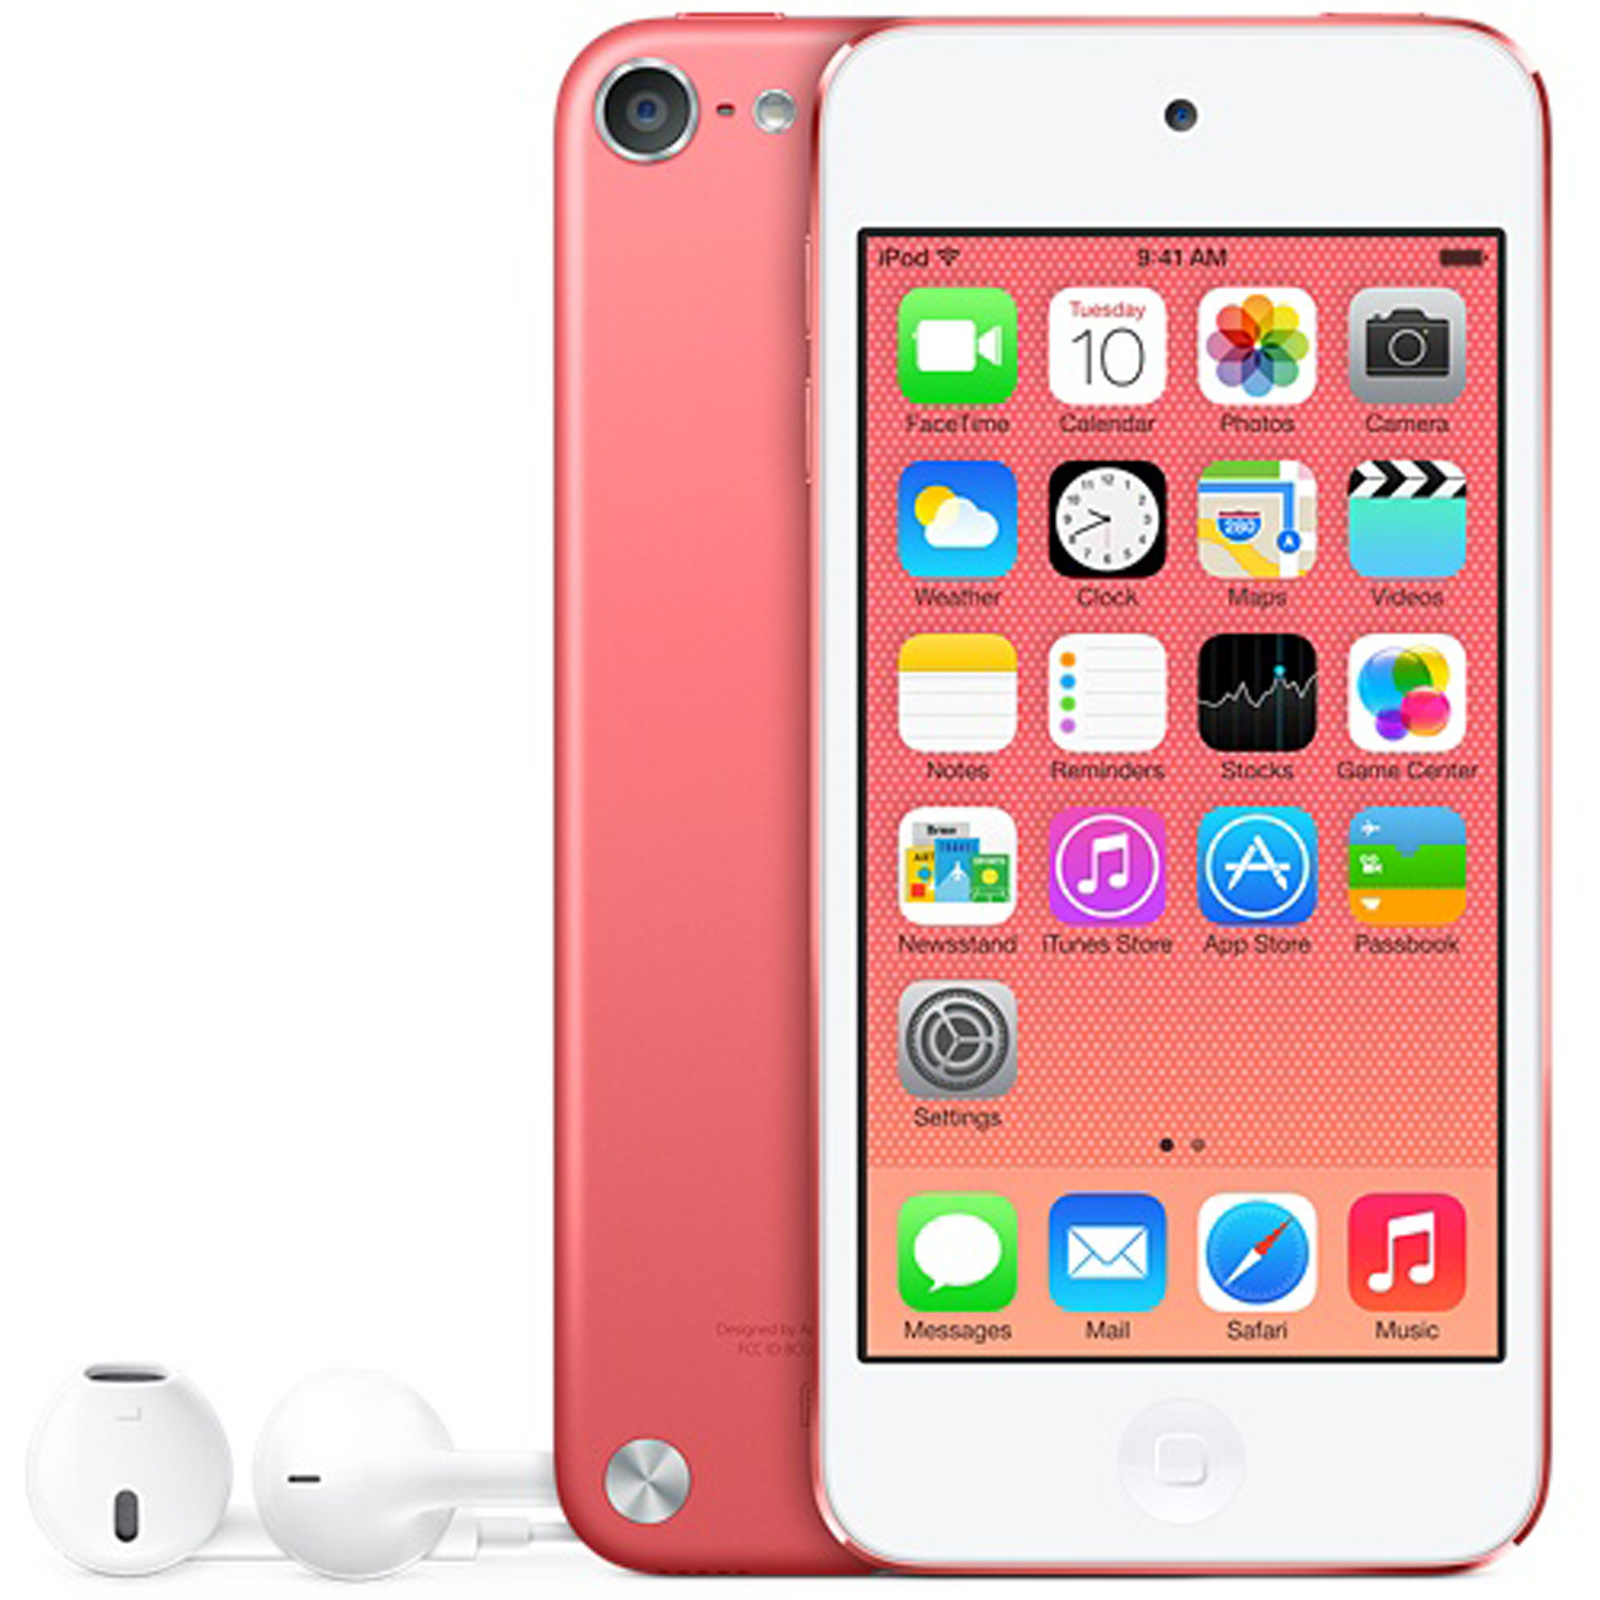 apple ipod touch 64 go rose lecteur mp3 ipod apple sur. Black Bedroom Furniture Sets. Home Design Ideas